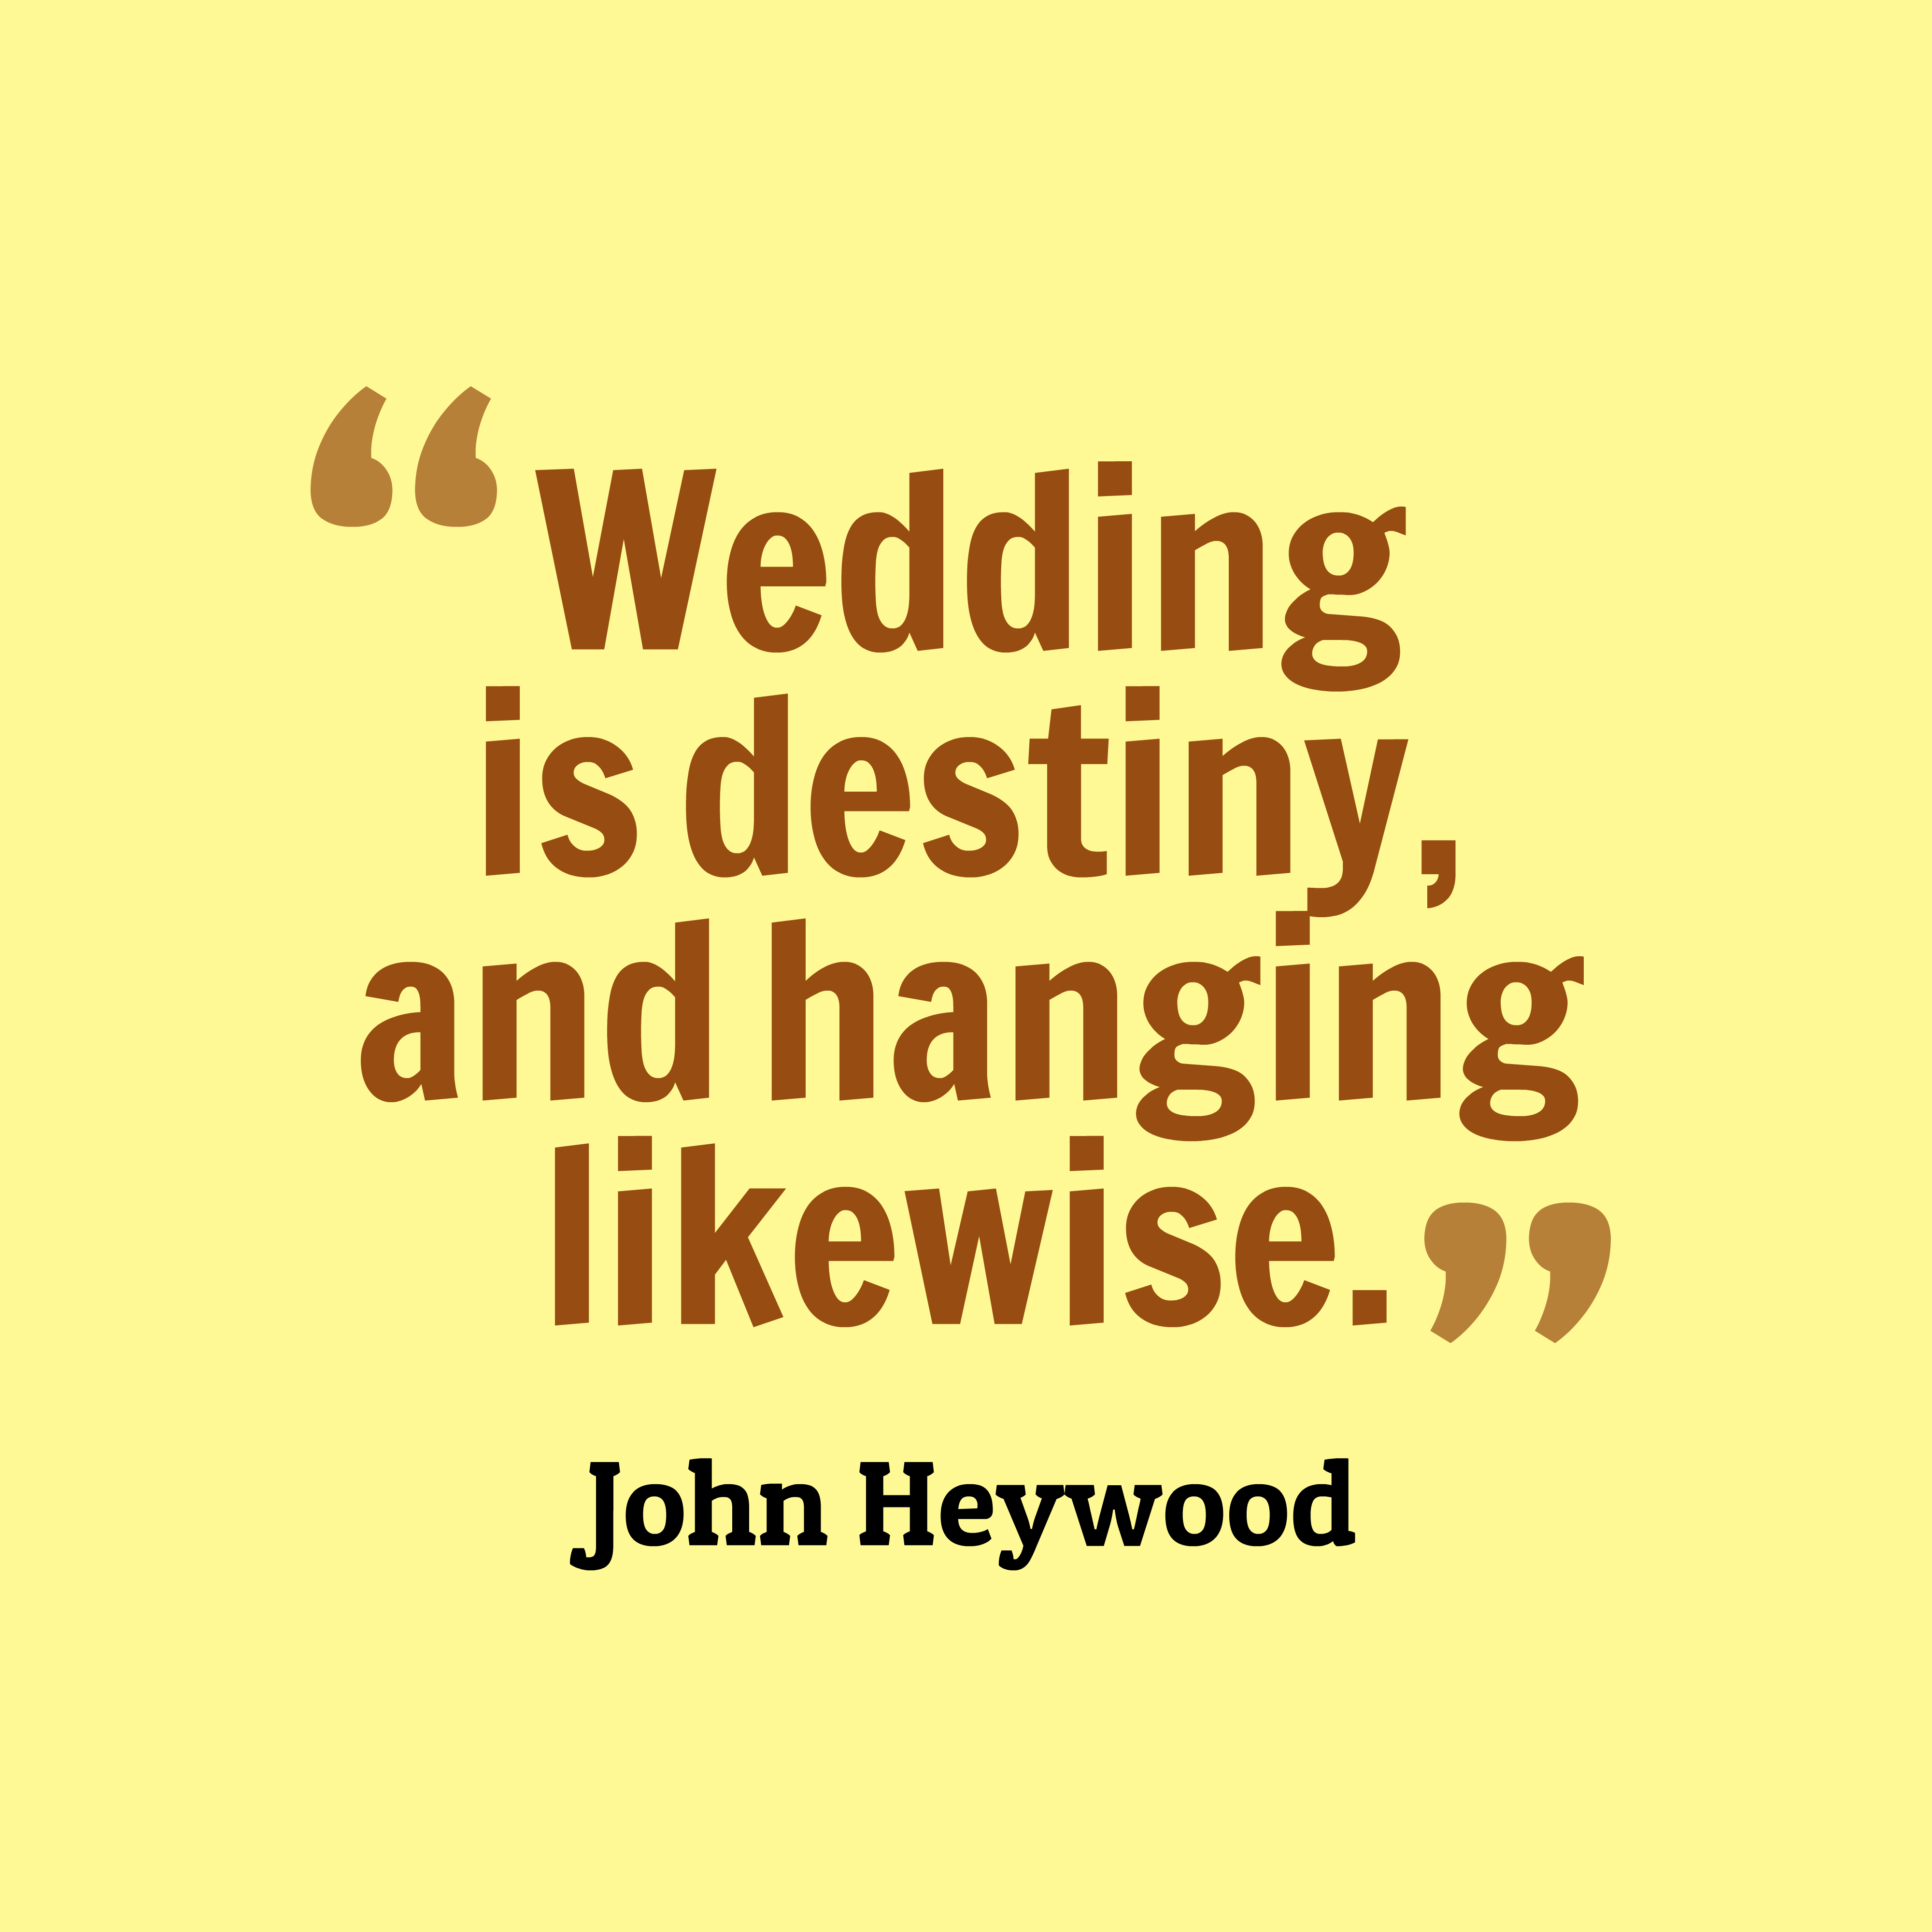 John Heywood Quote About Wedding